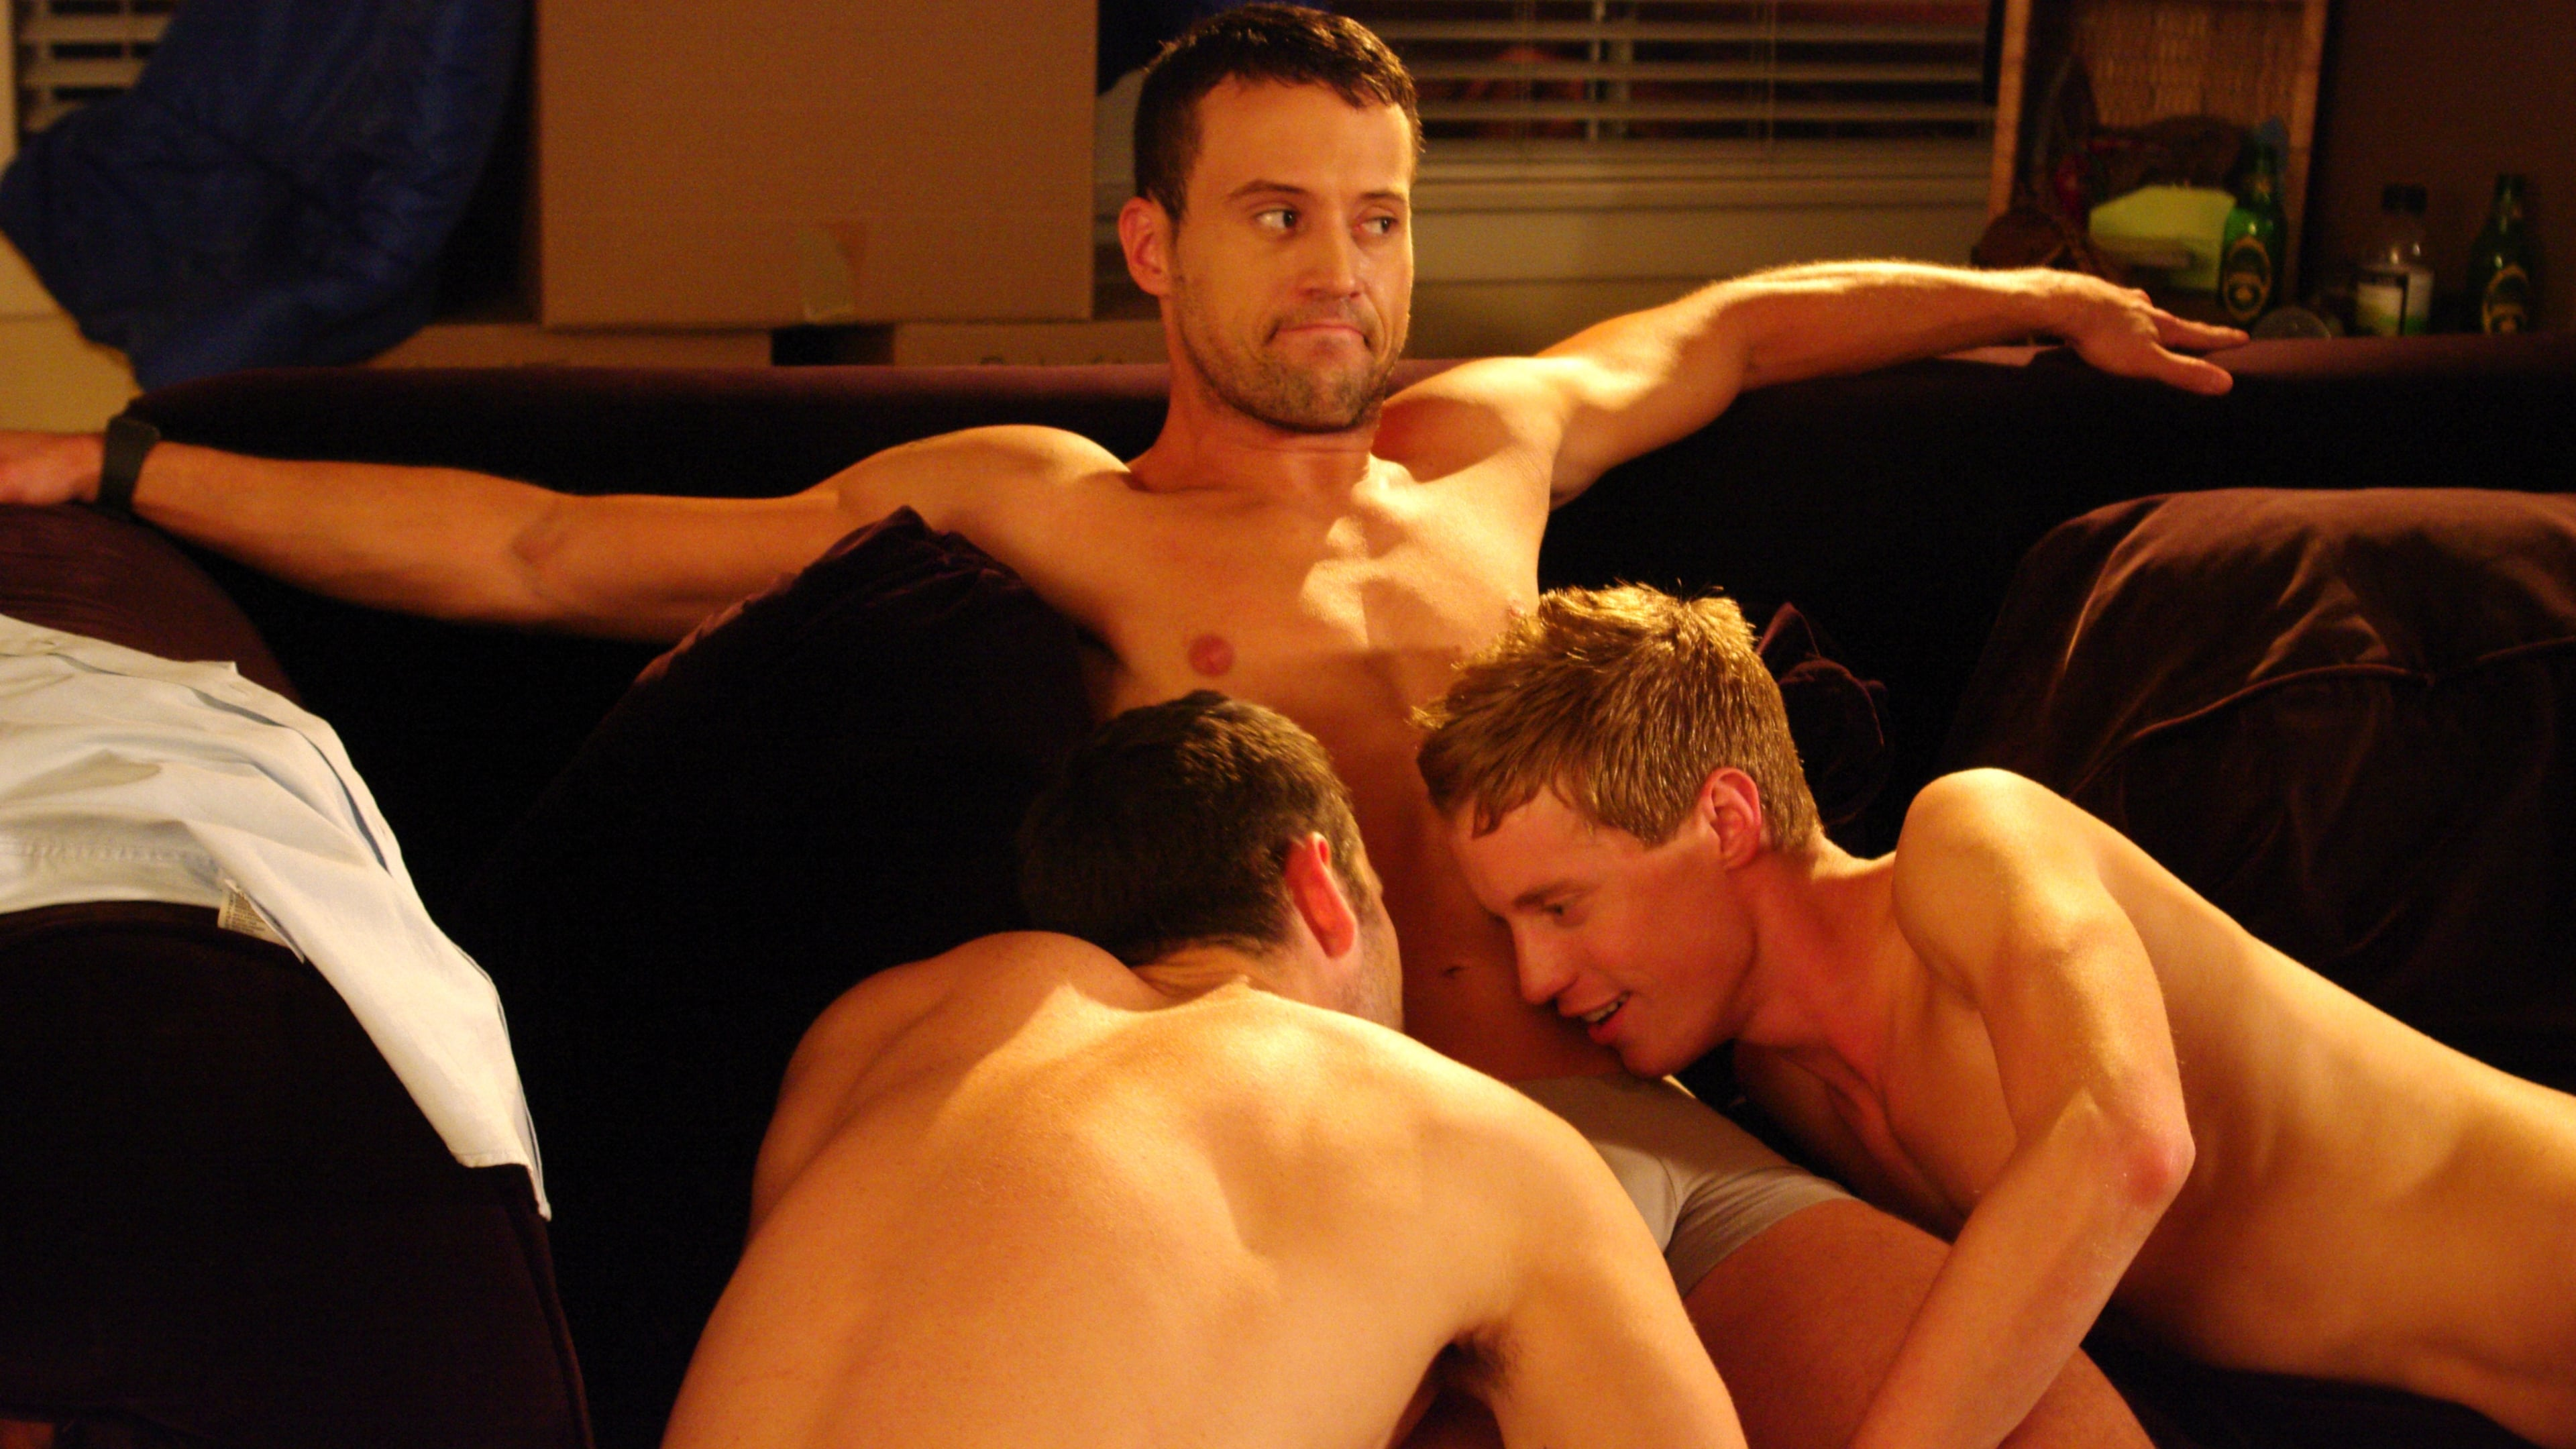 Watch pinoy gay indie images for free